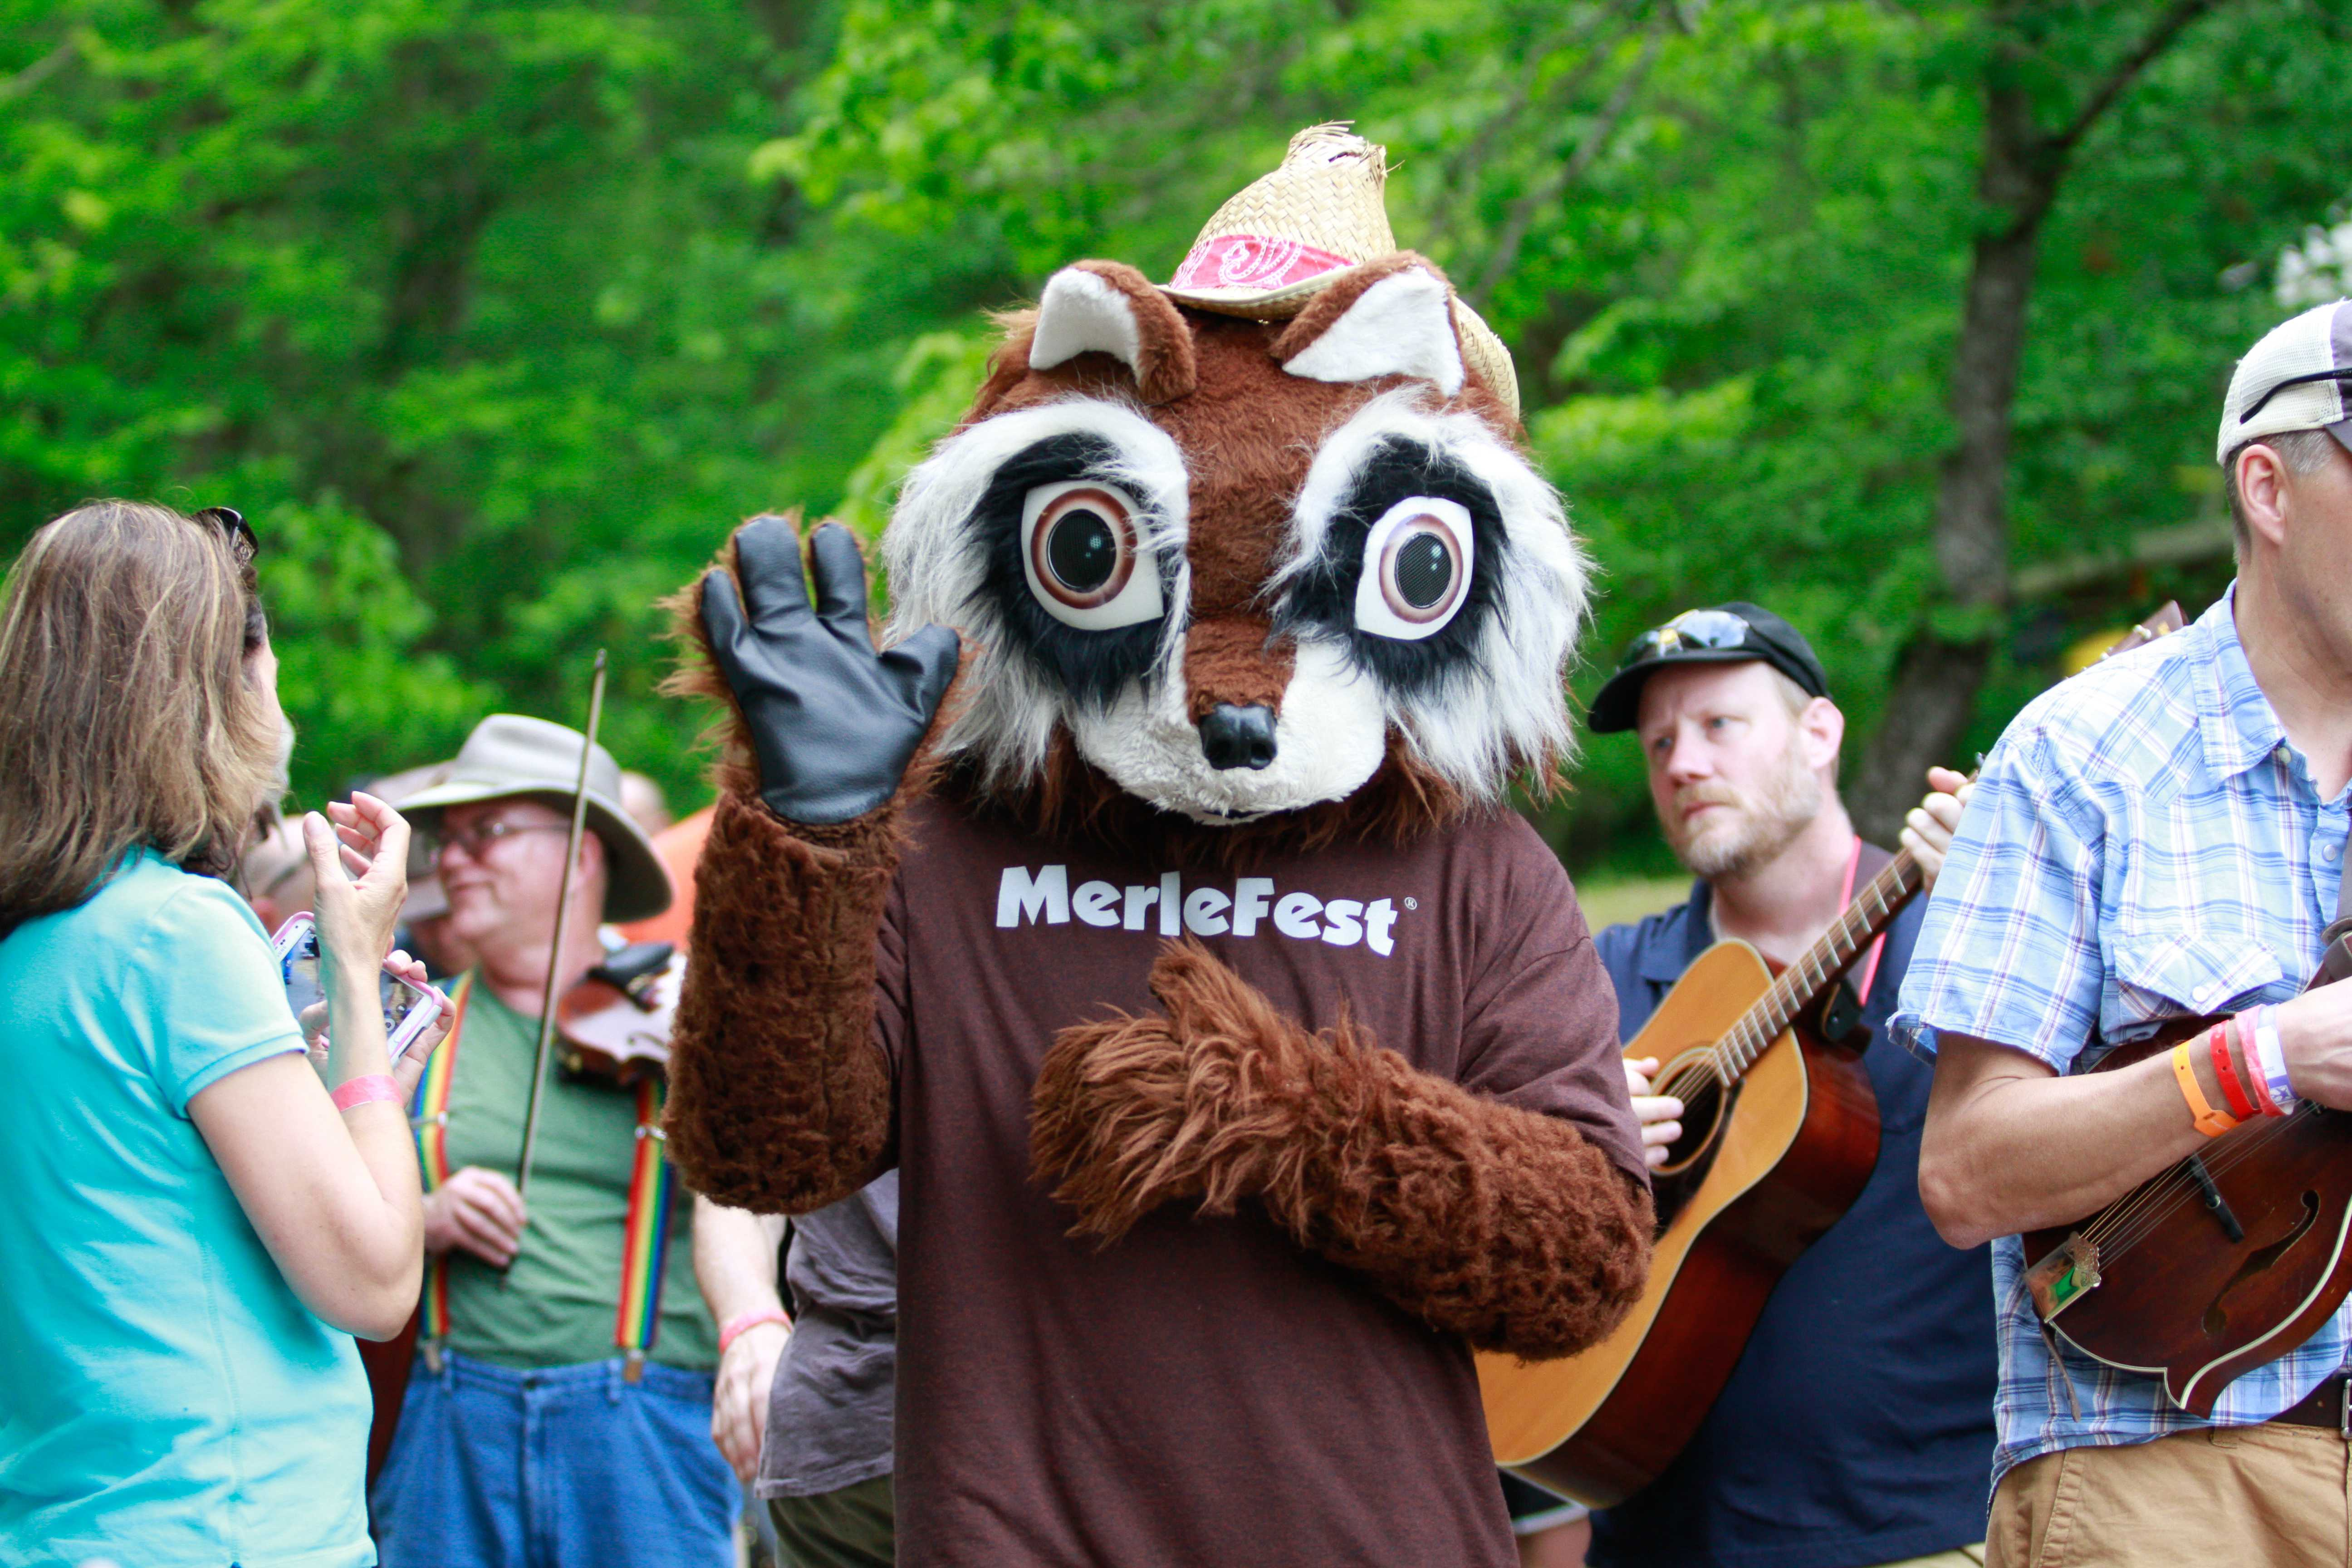 MerleFest's mascot, Flattop the raccoon, at MerleFest 2016. Photo by Jeff Clements.